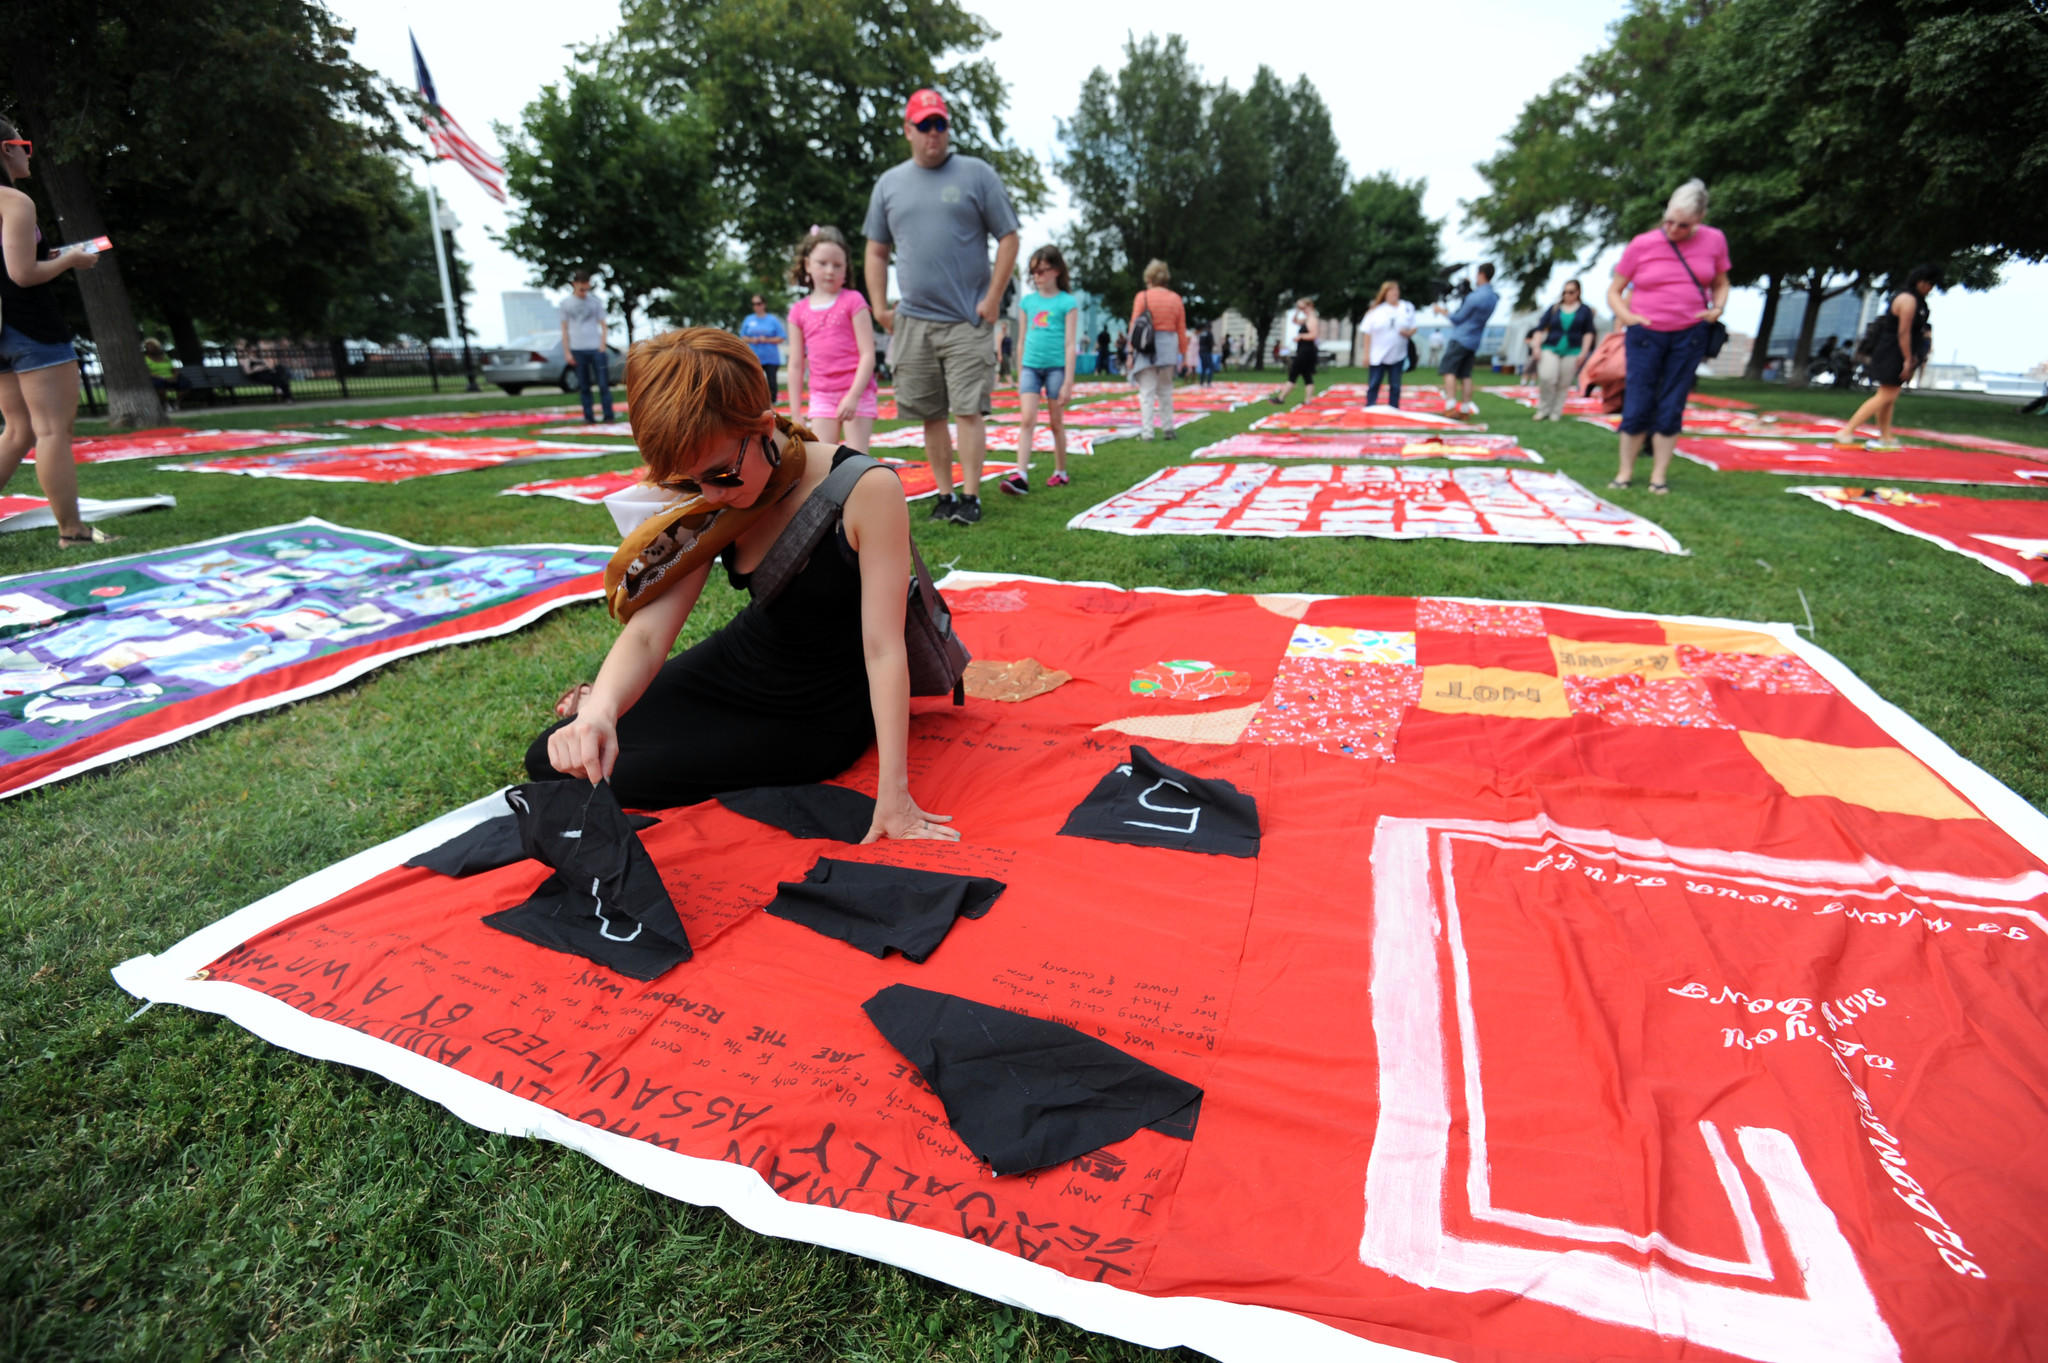 Aliya Webermann, 25, of Baltimore reads one of the stories on a panel of The Monument Quilt. These sections of quilt, dedicated to survivors of rape and abuse, are displayed at Federal Hill Park.